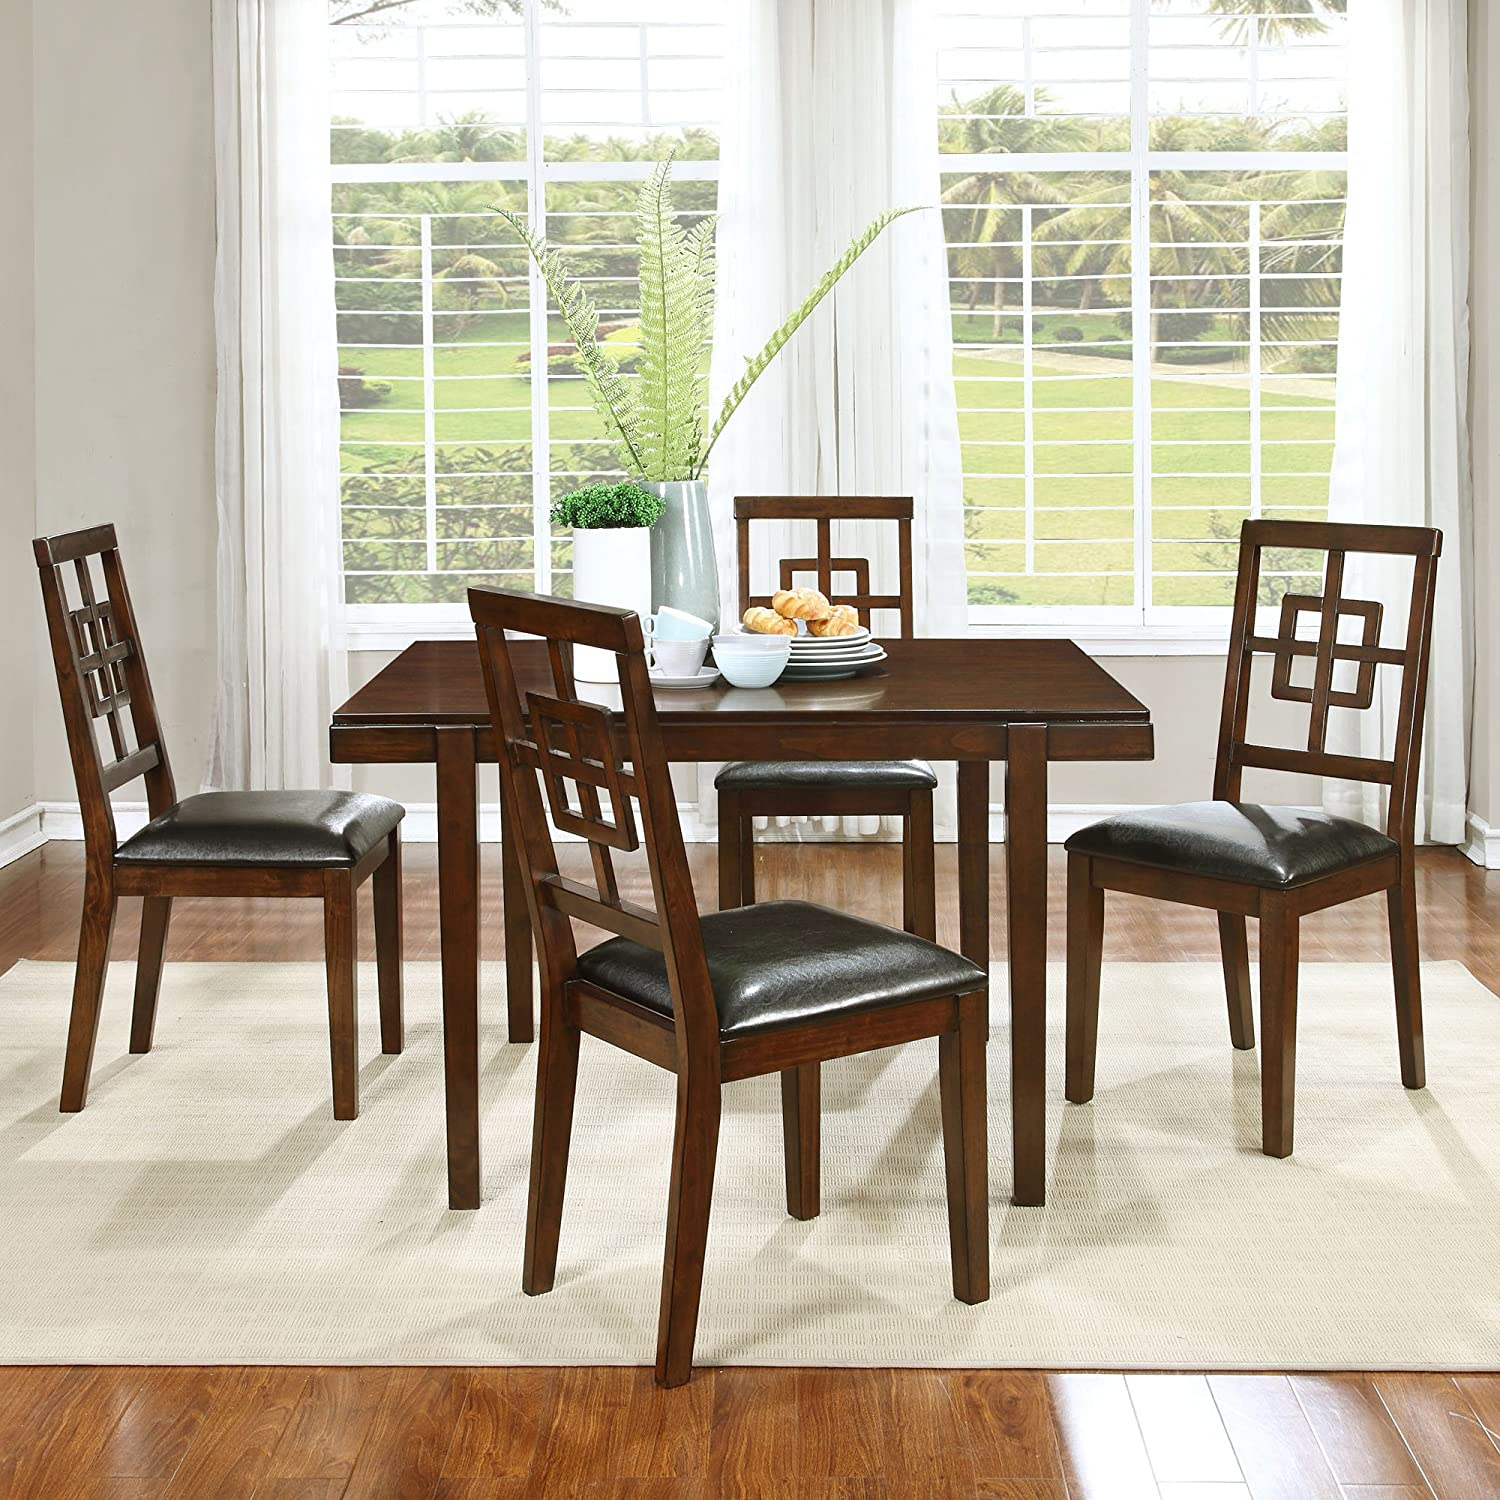 Best Master Furniture Dahlia 5 Pcs Transitional Dining Set, Cherry